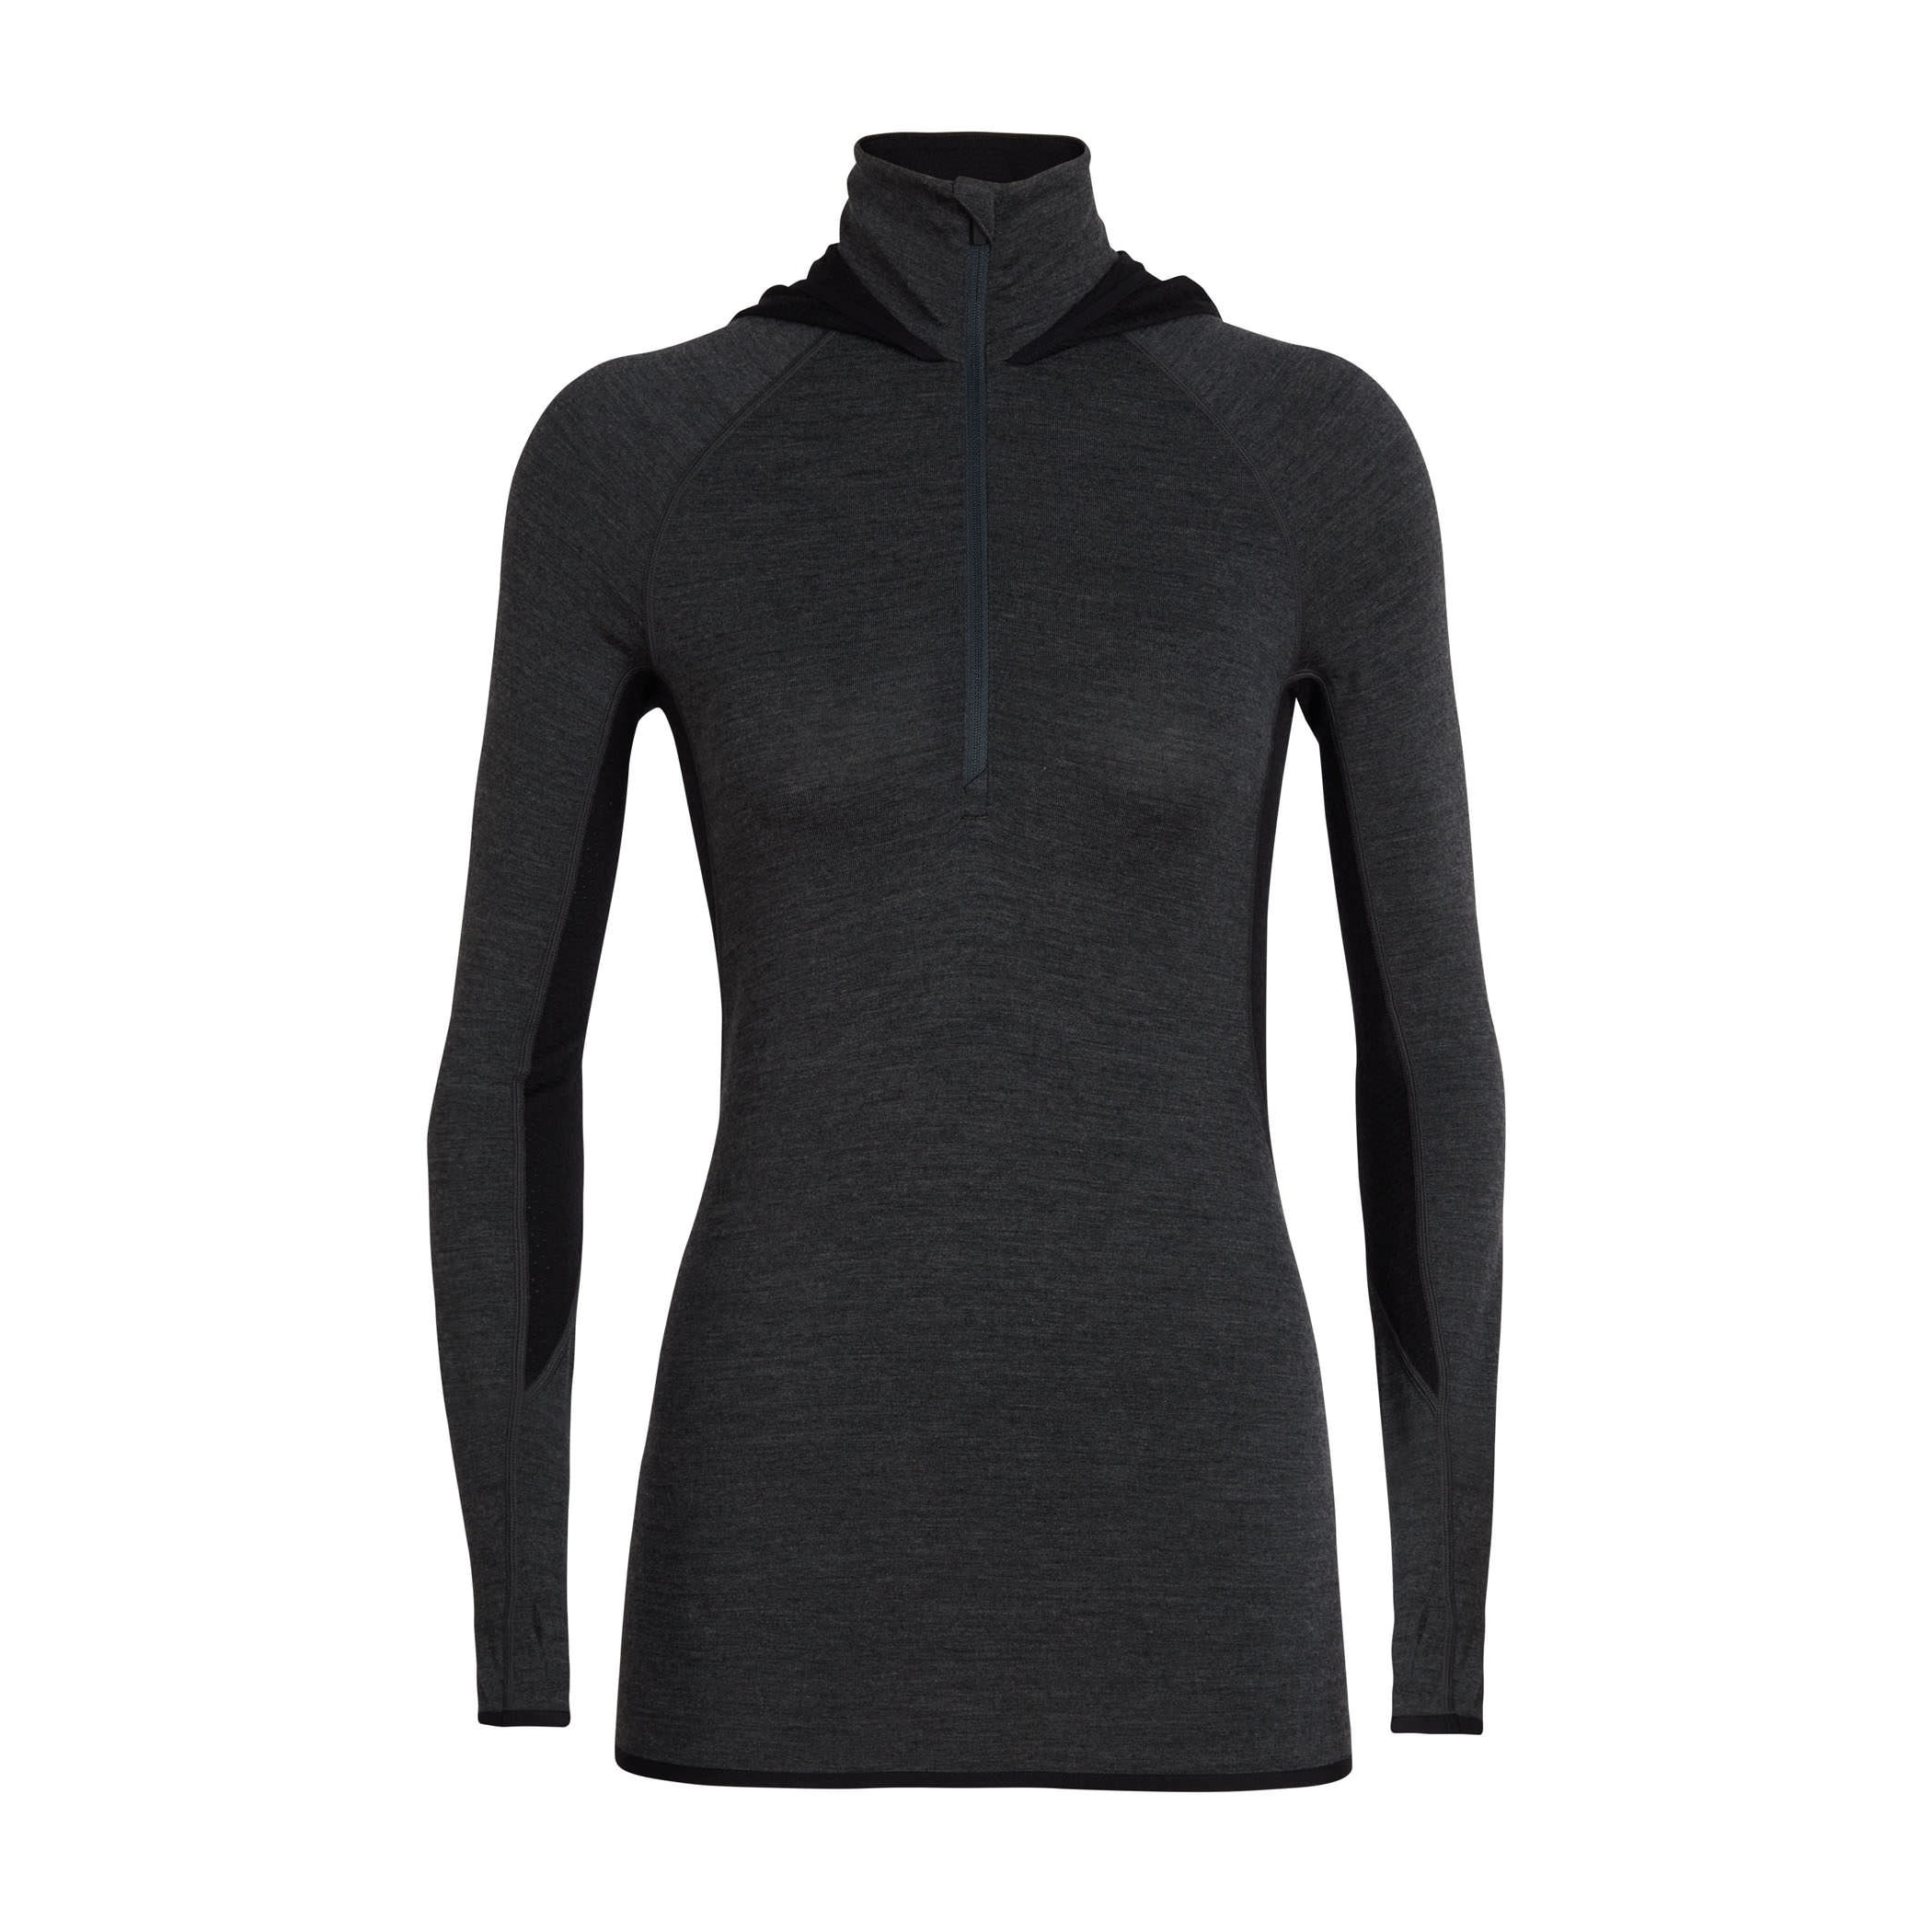 Fluid Zone Half Zip Hood Long Sleeve - Women's